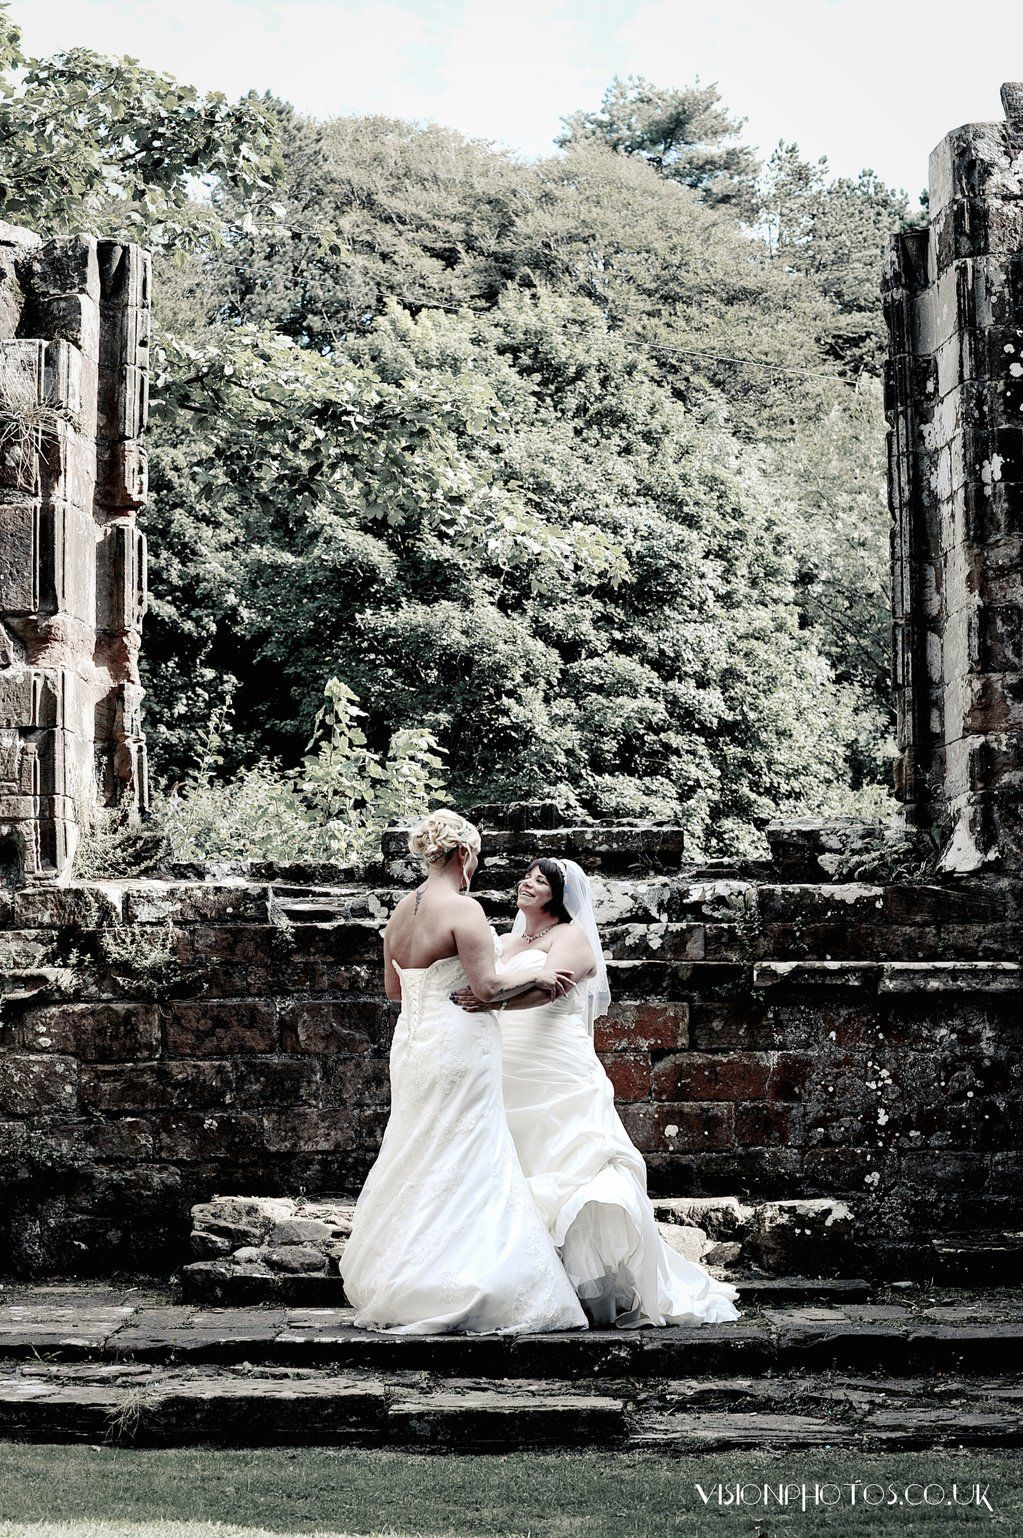 "Vision Photography on Twitter: ""Beautiful wedding @AbbeyHouseHtl The lovely Debbie and Alison got married. @LesbianWeddingI @GayLesbianWeb  #wedding https://t.co/GafpYLuMcX"""